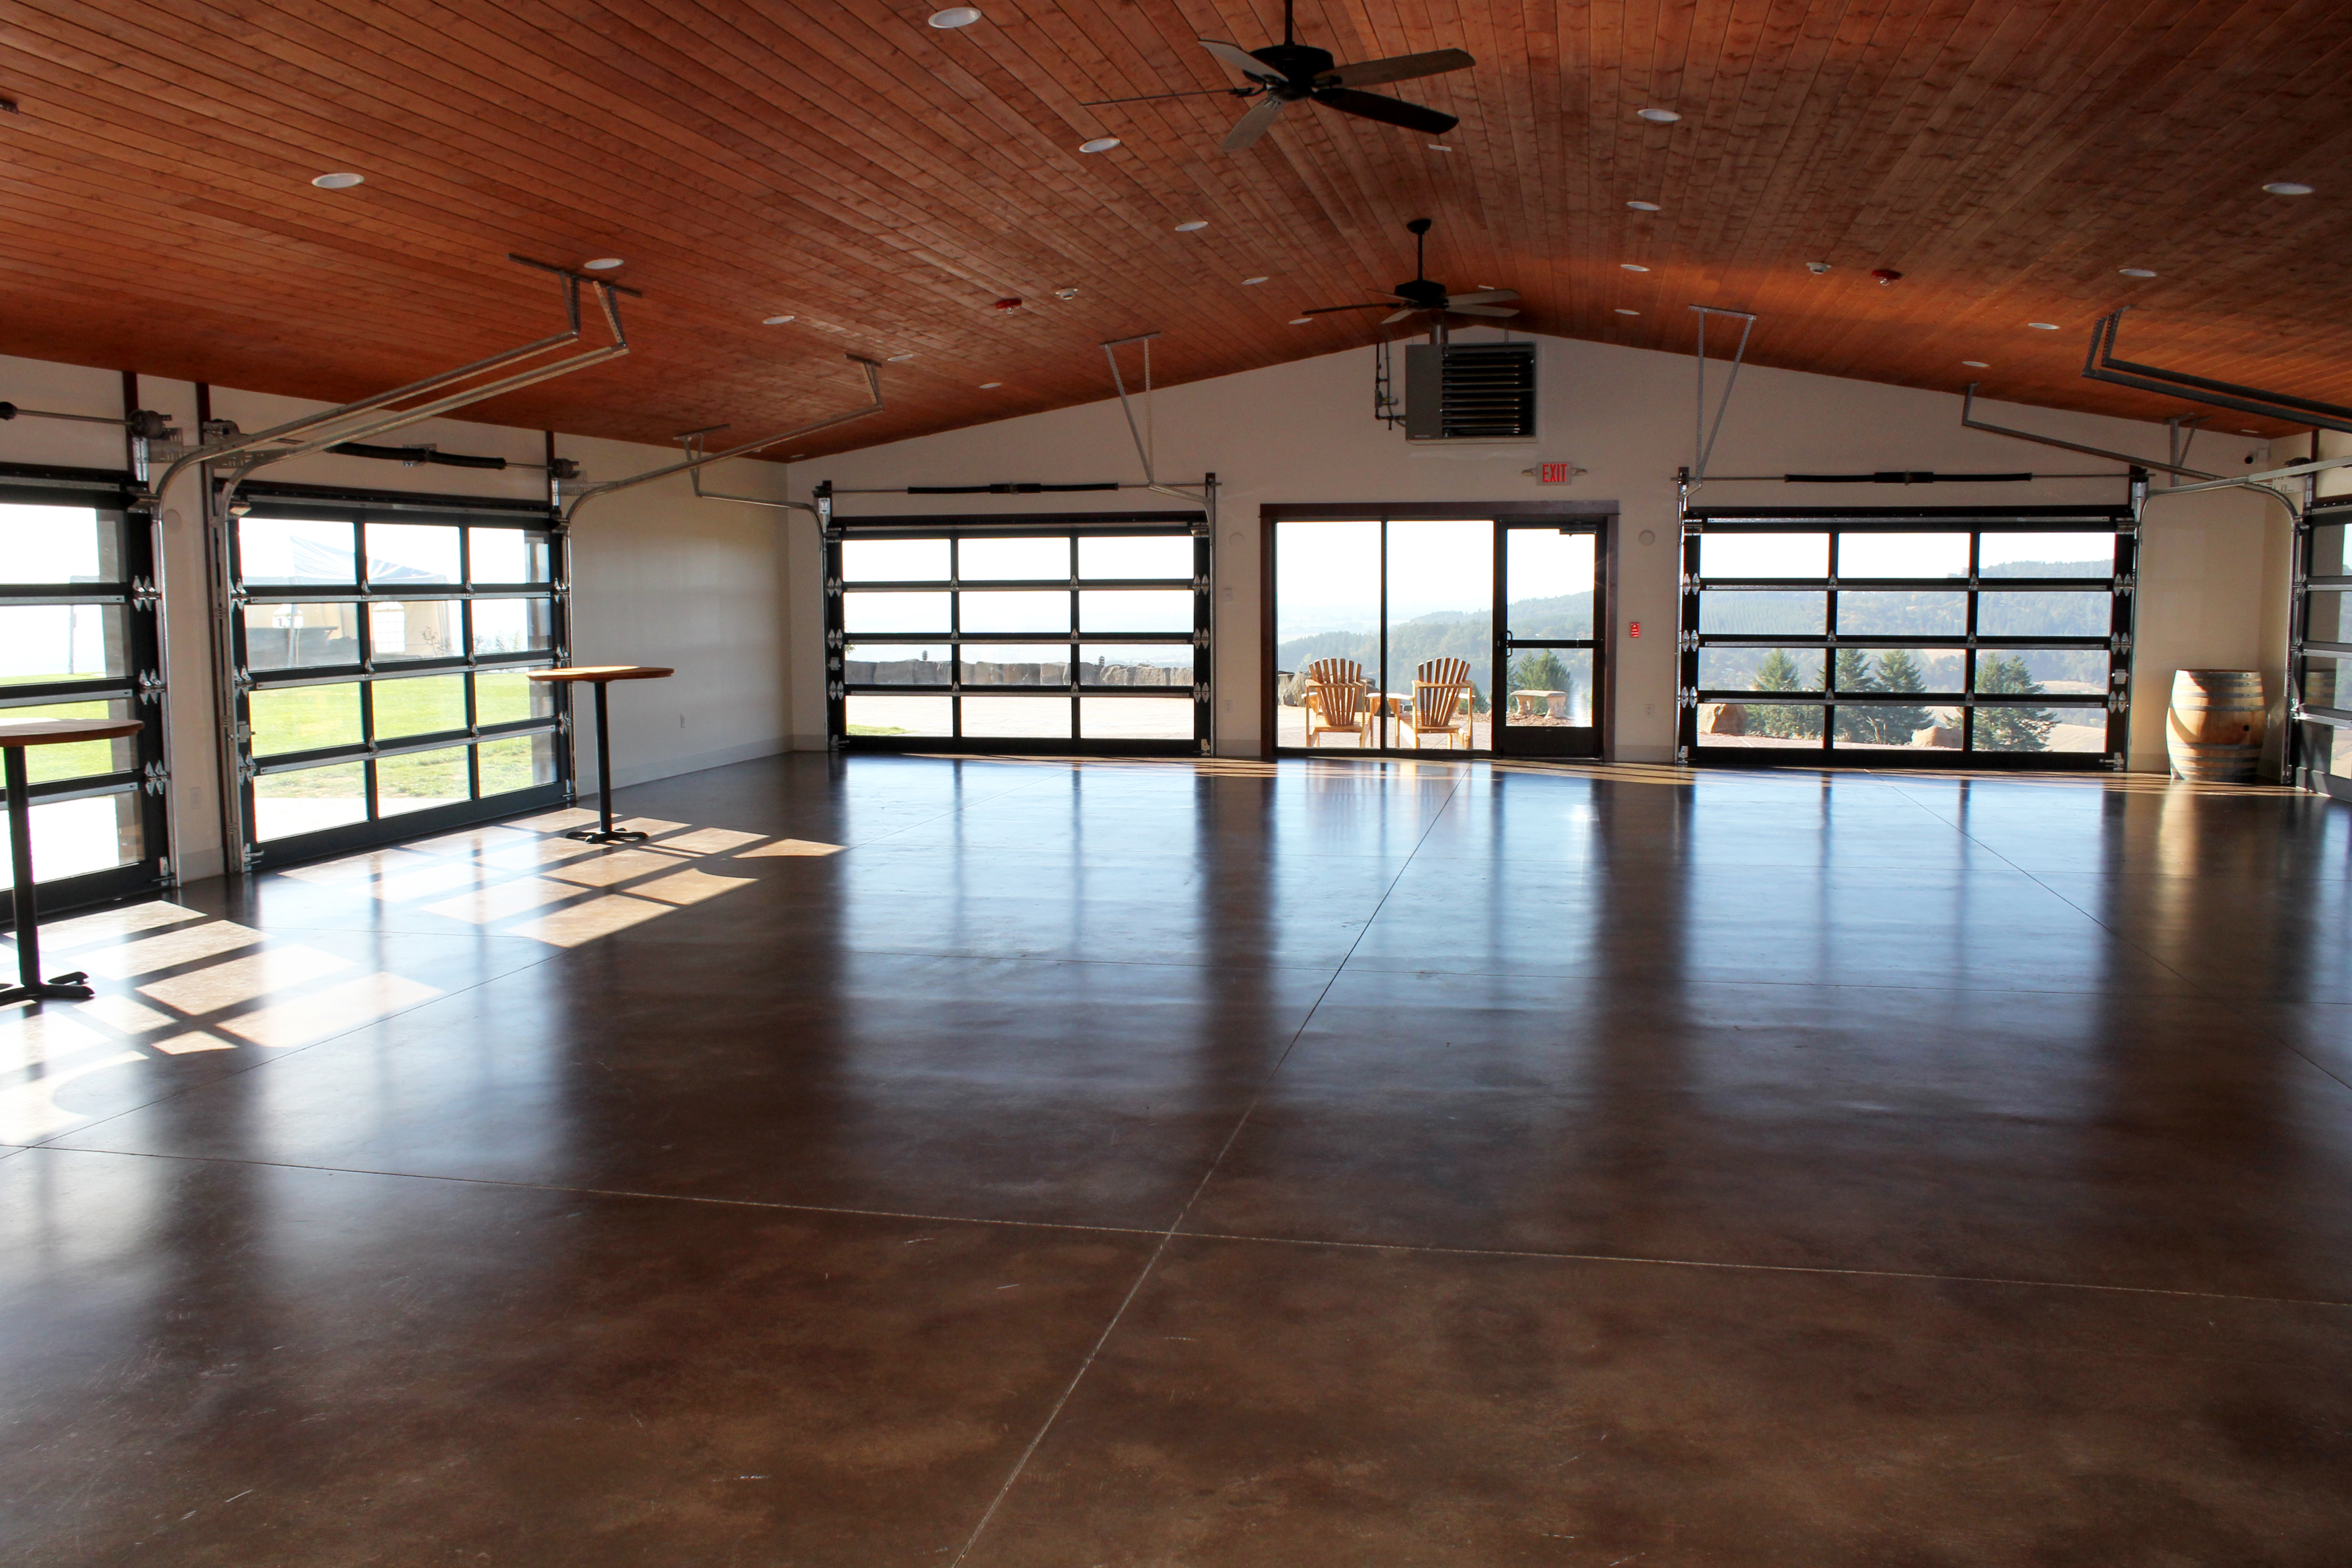 Project of the month winner december 2016 northwest door wade harris owner and operator of stellar garage door solutions in carlton oregon has fond memories of this project especially the view the weather rubansaba